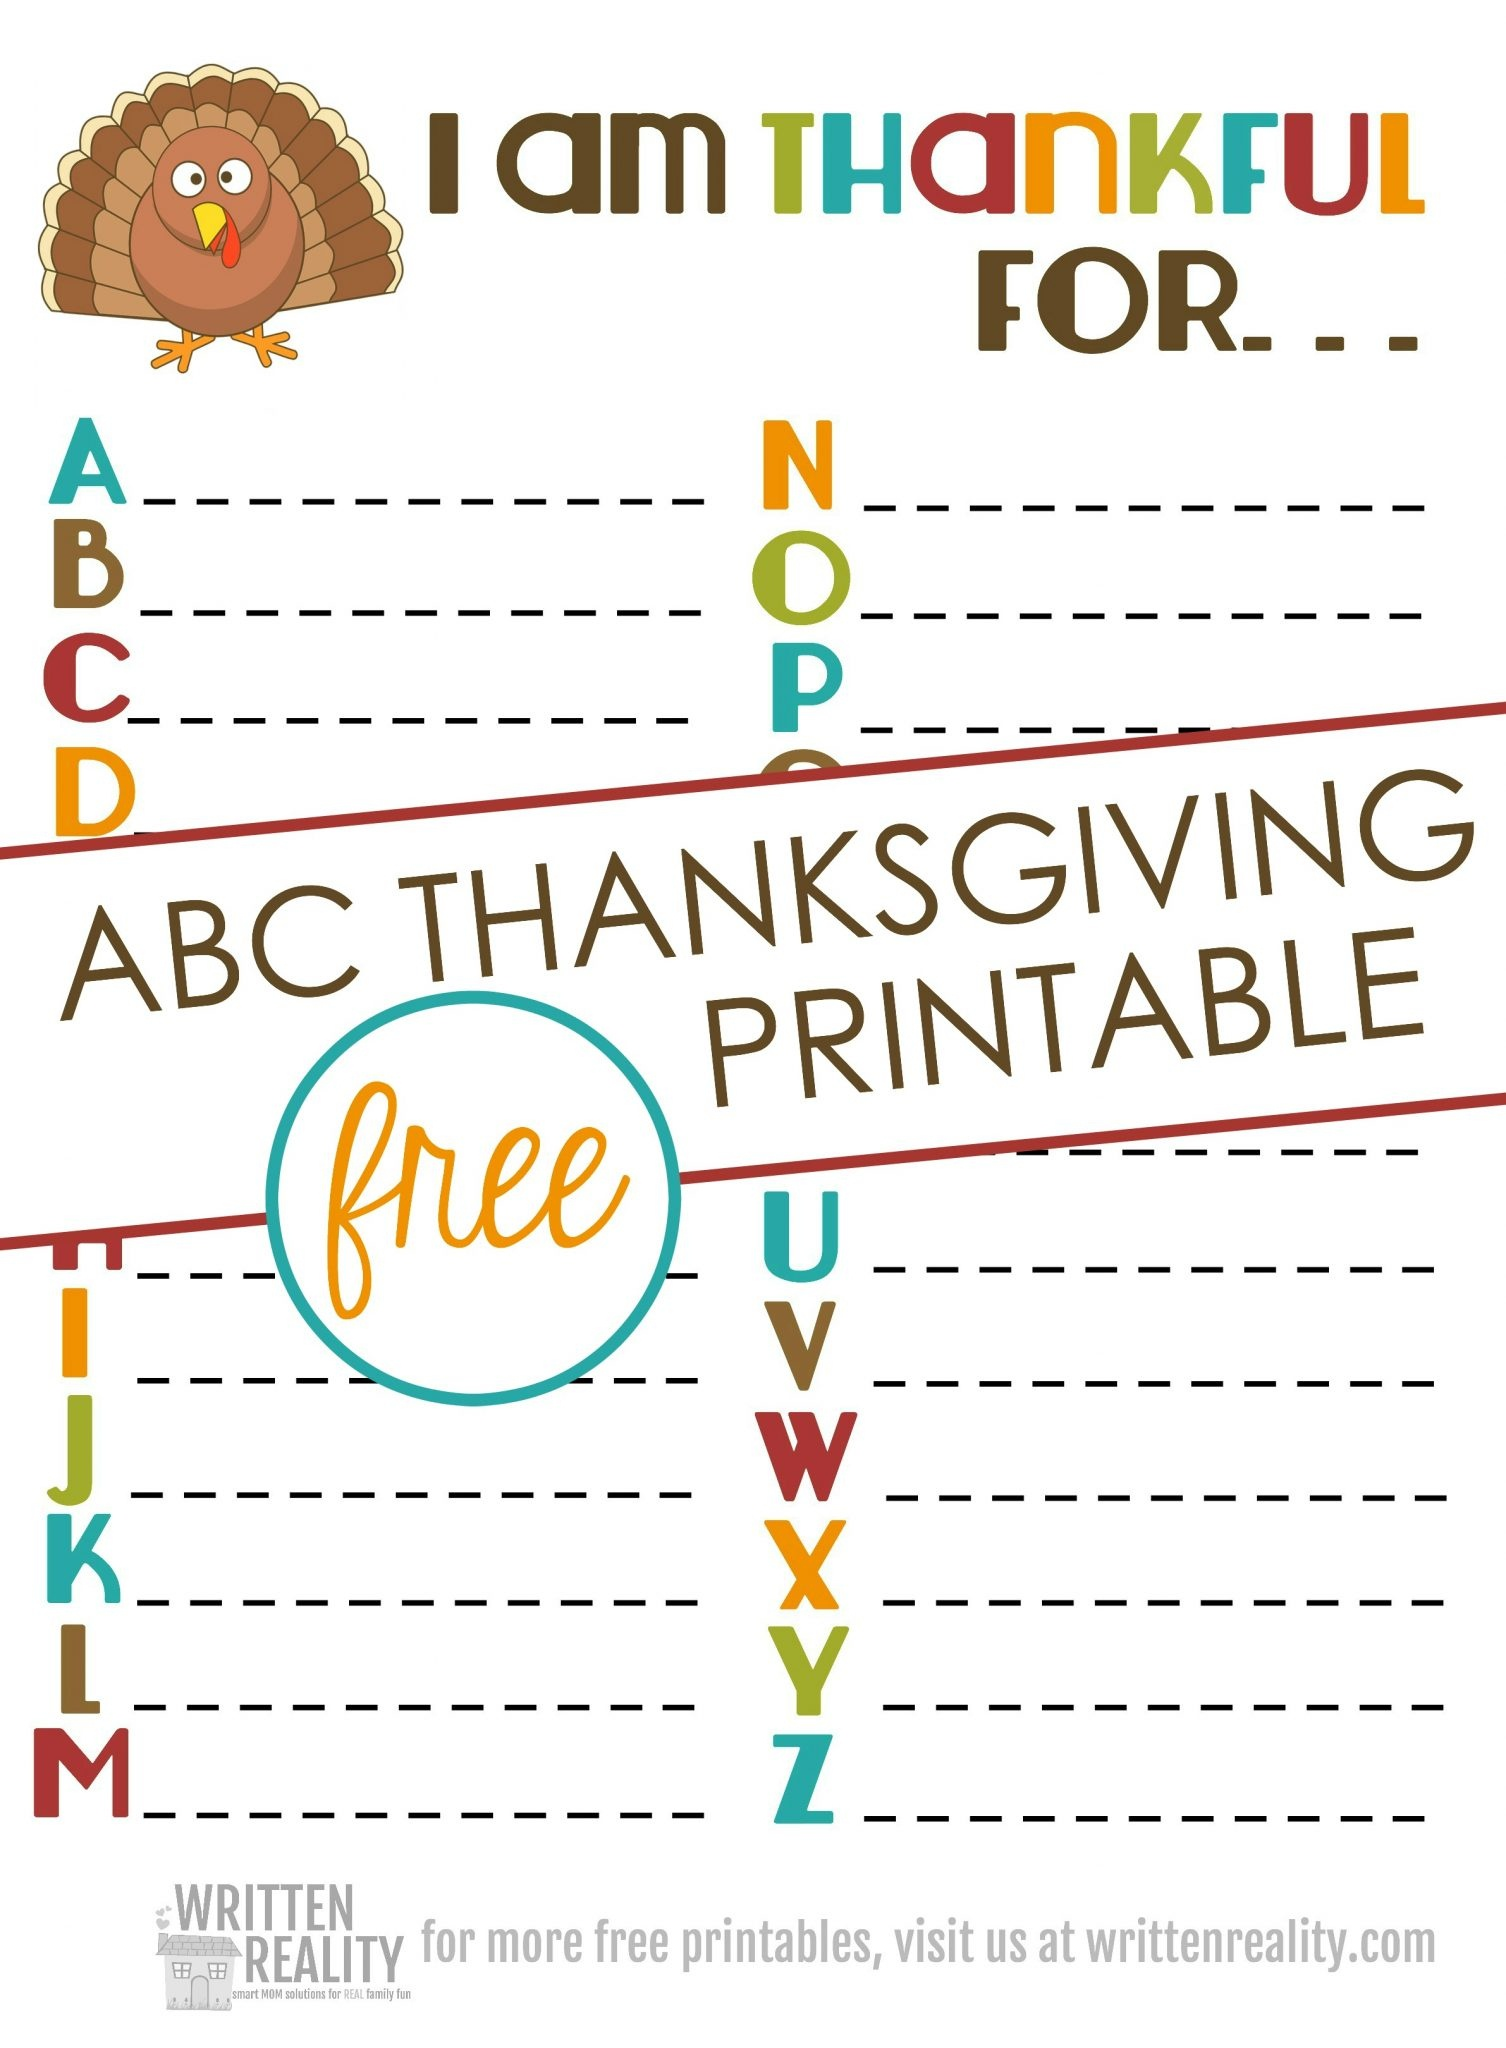 Thankful Abcs Printable Is Perfect For Thanksgiving! - Written Reality - Free Thanksgiving Printables